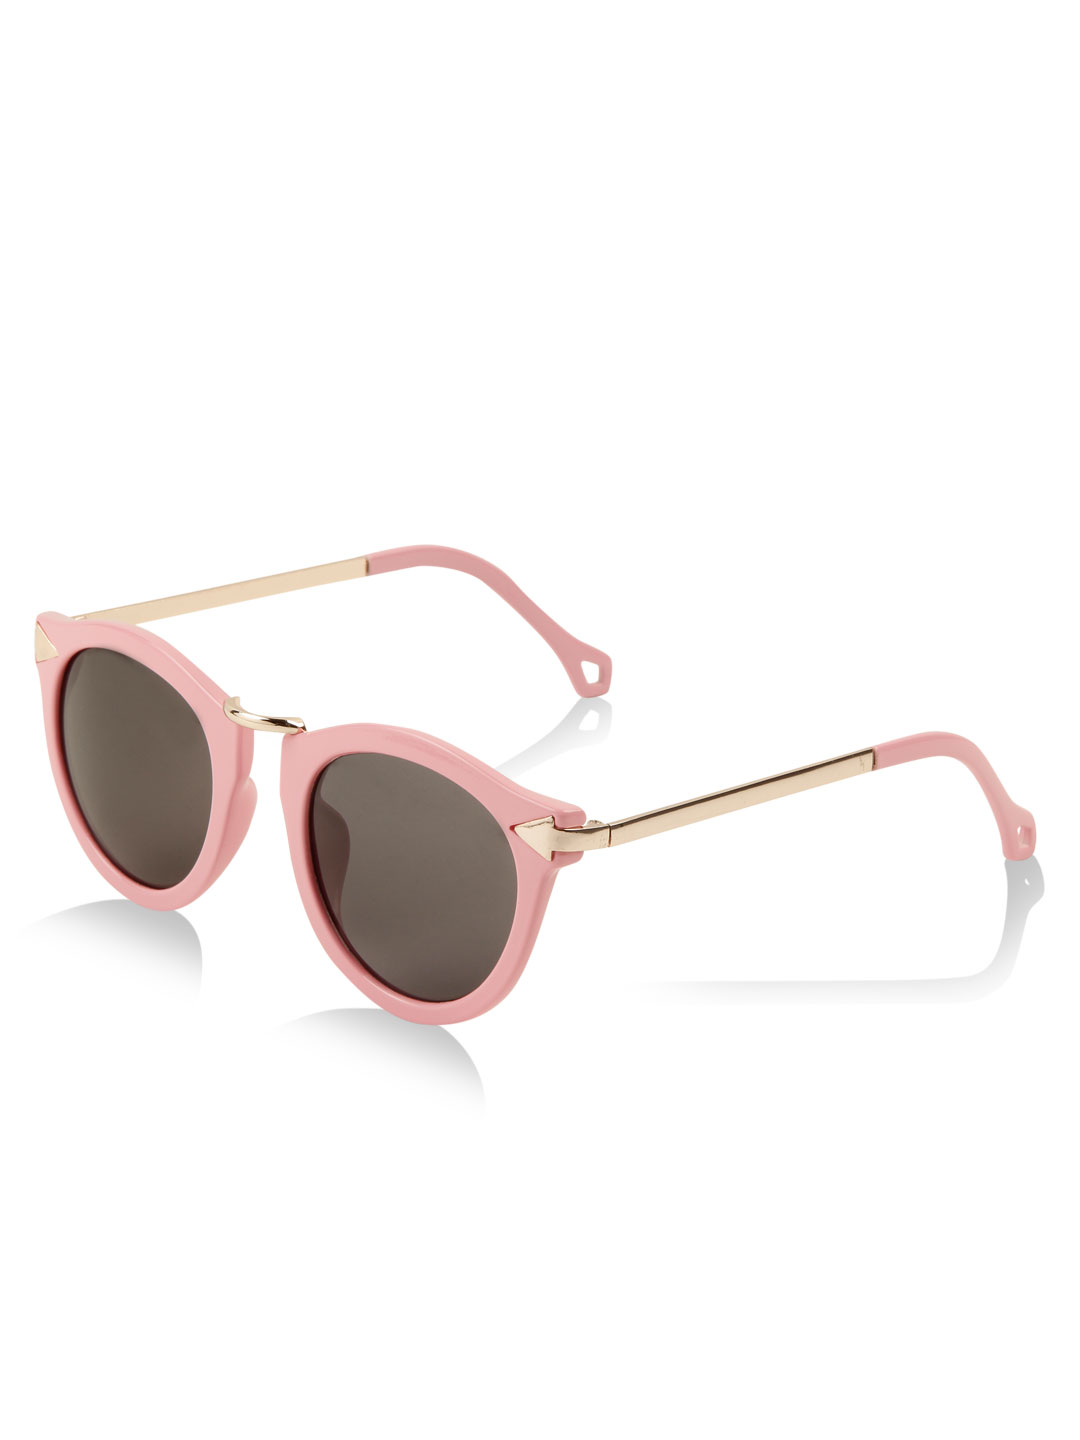 Style Fiesta Pink Rounded Cat Eye Sunglasses 1